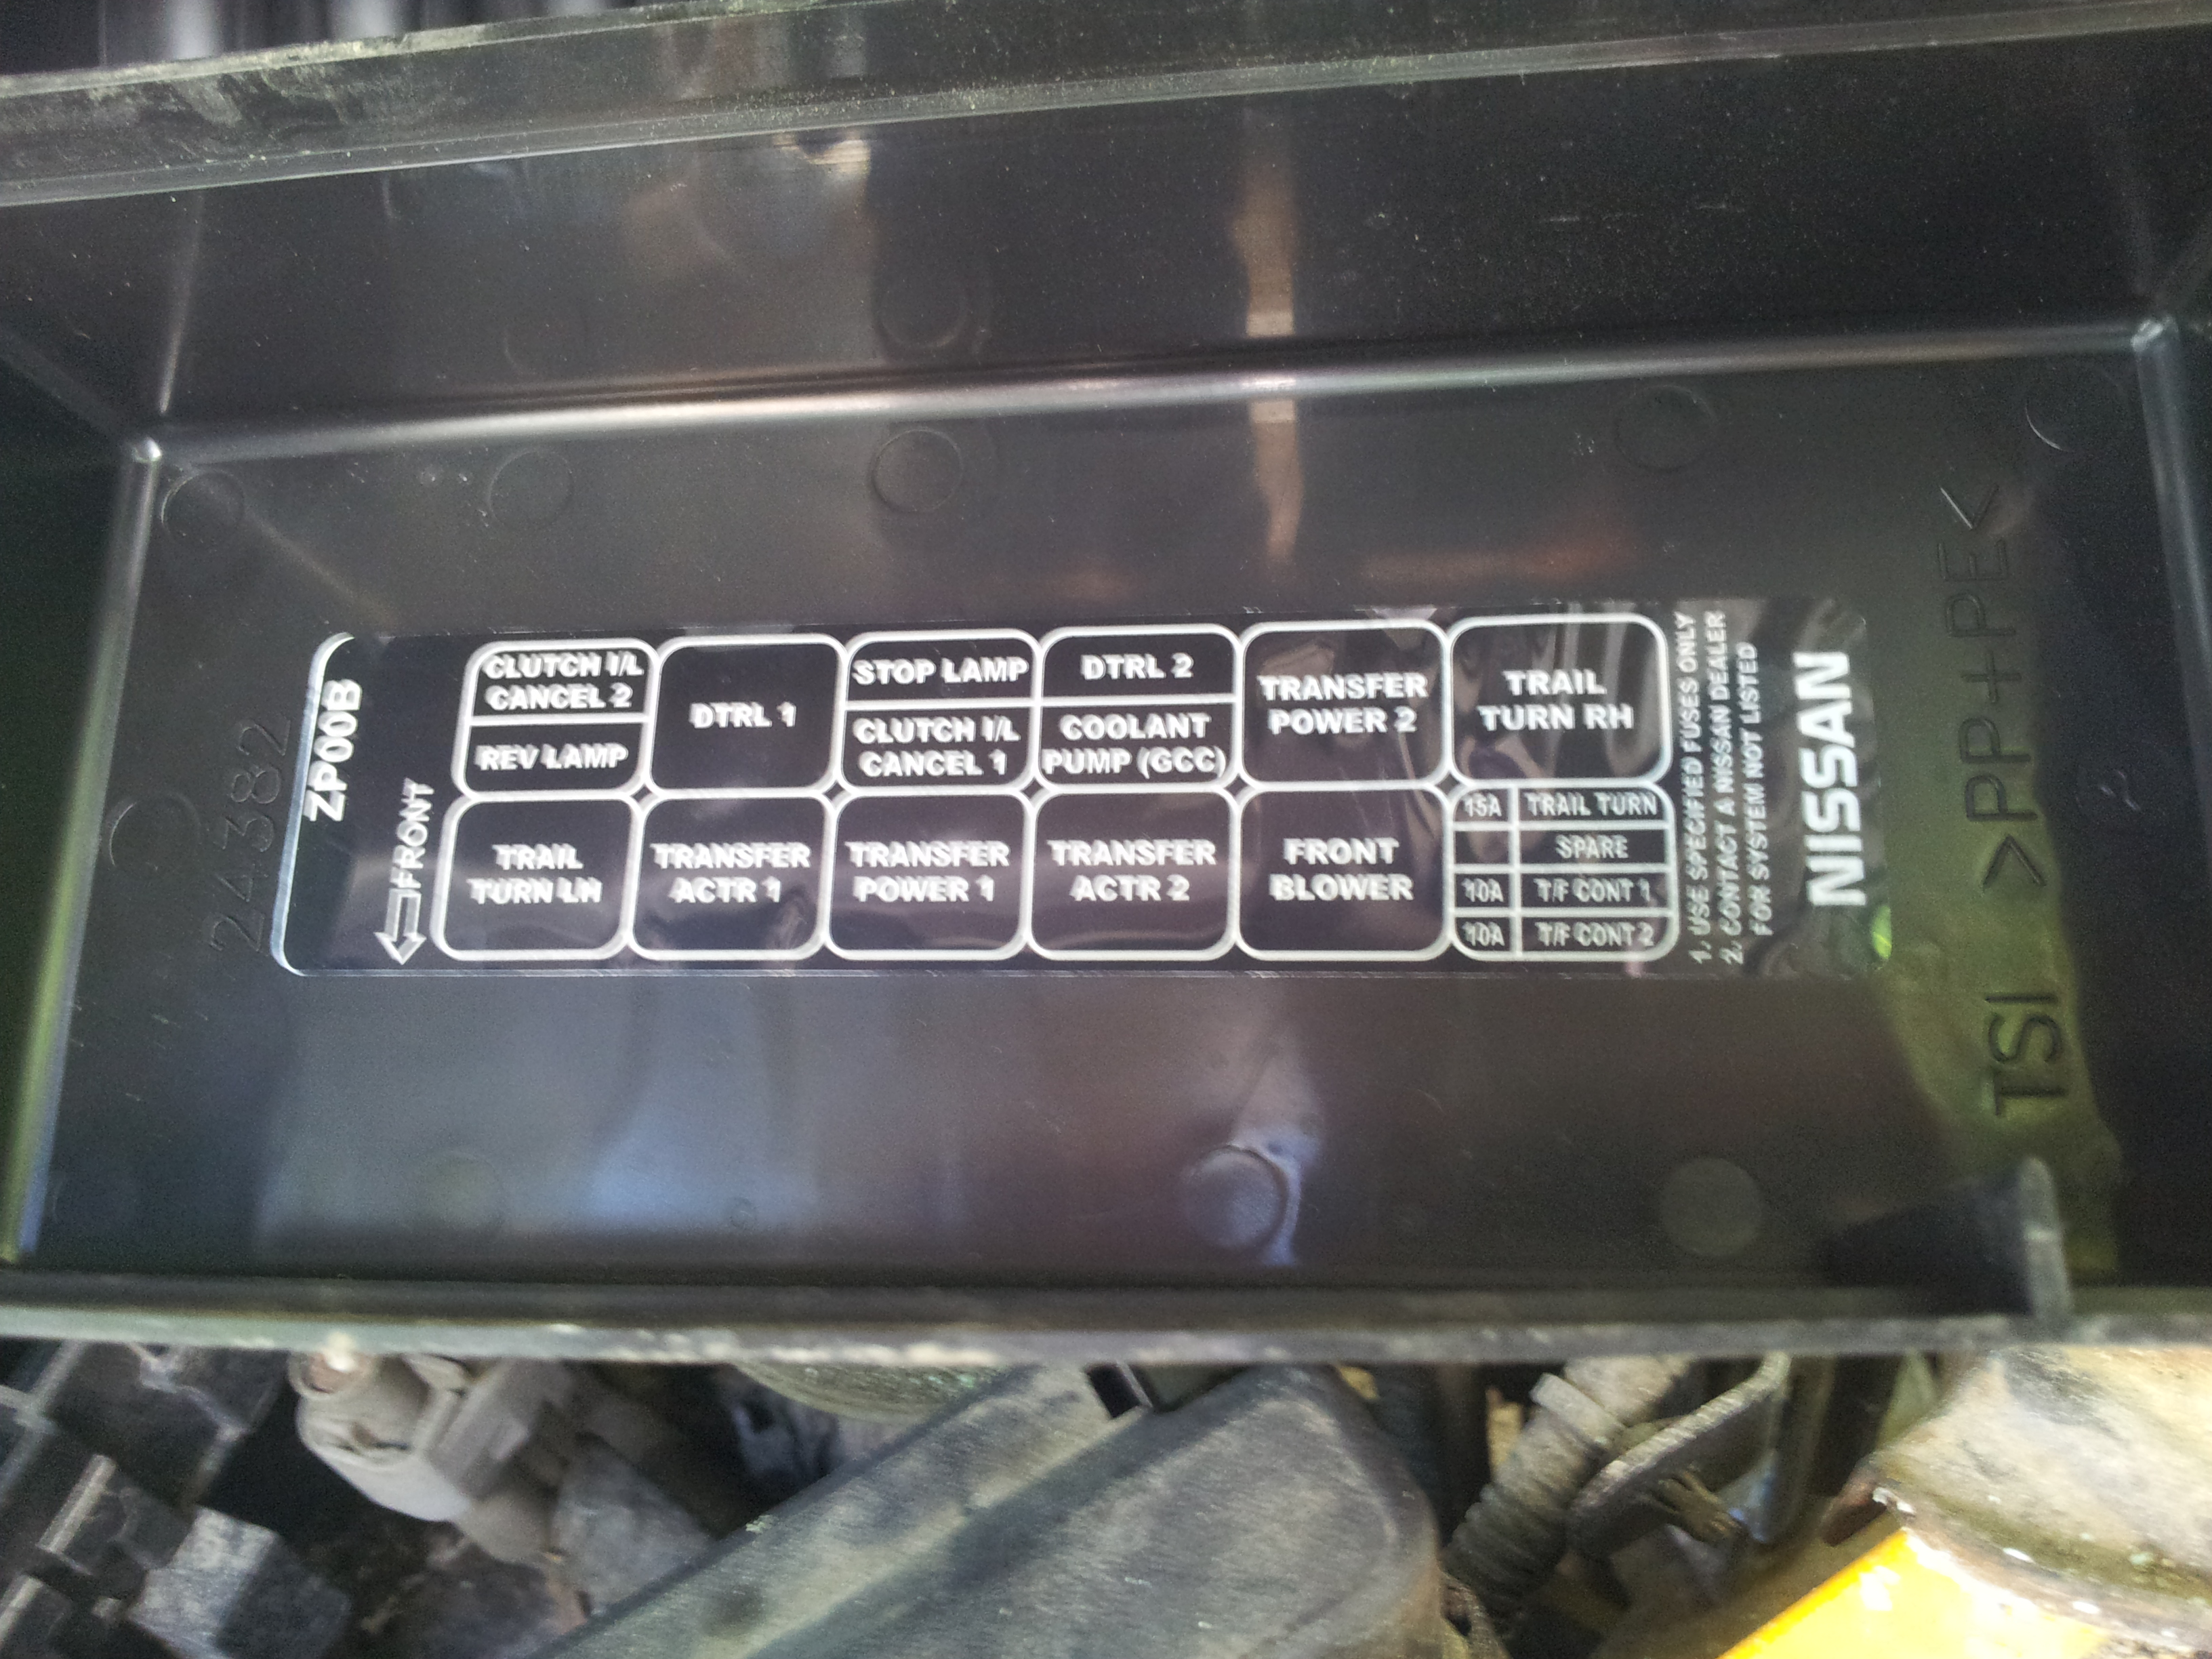 Nissan Maxima Fuse Box Location Great Design Of Wiring Diagram 2007 Pathfinder Engine 2000 Headlight 2004